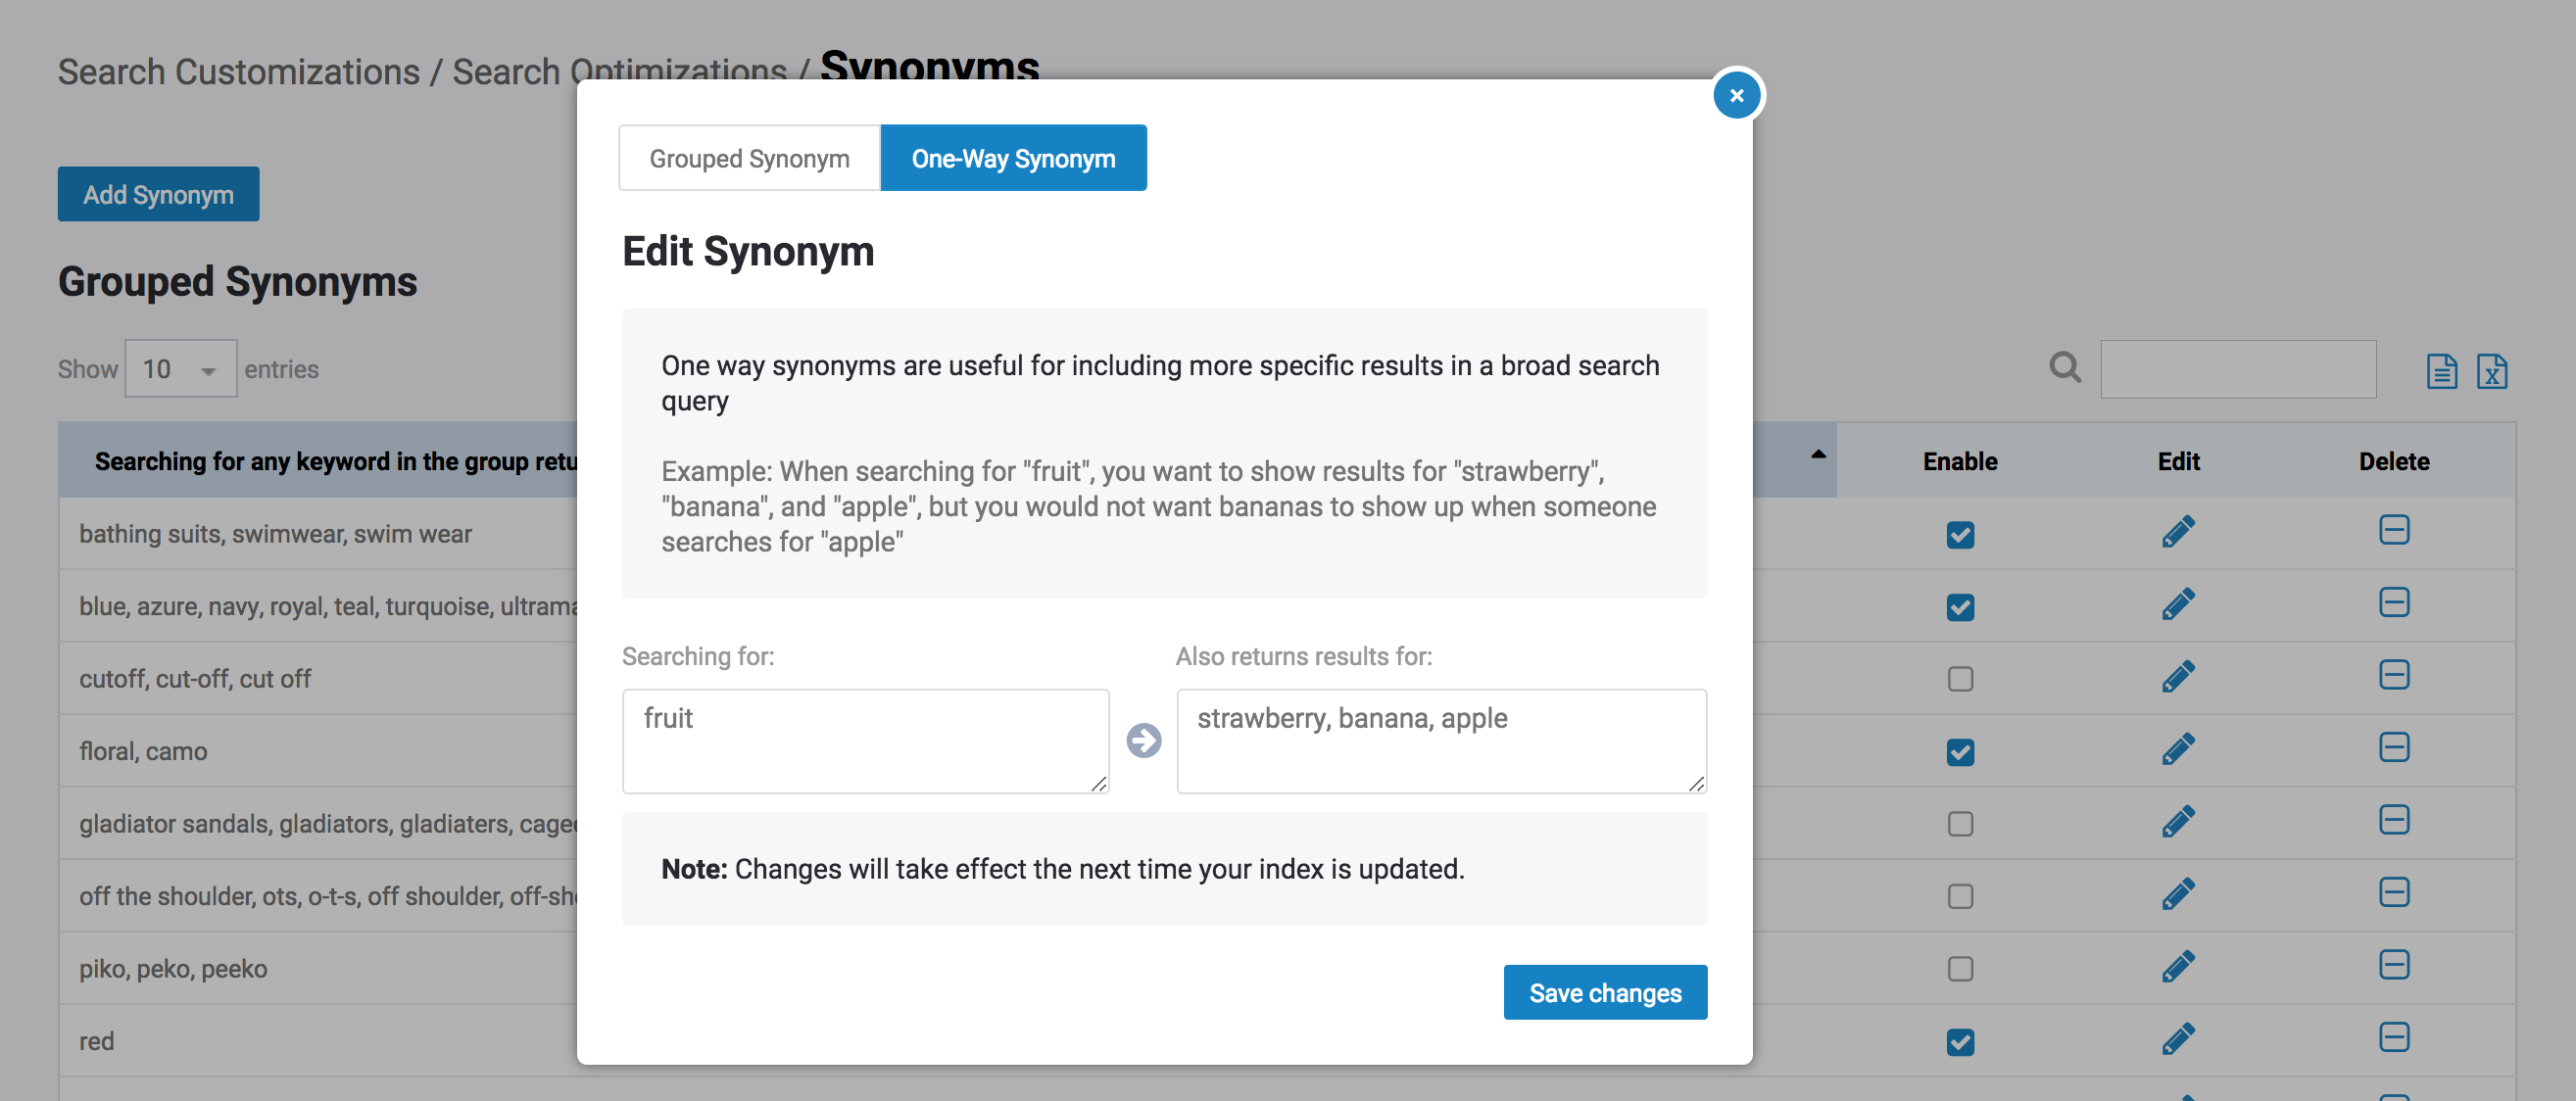 Synonyms – SearchSpring Help Desk